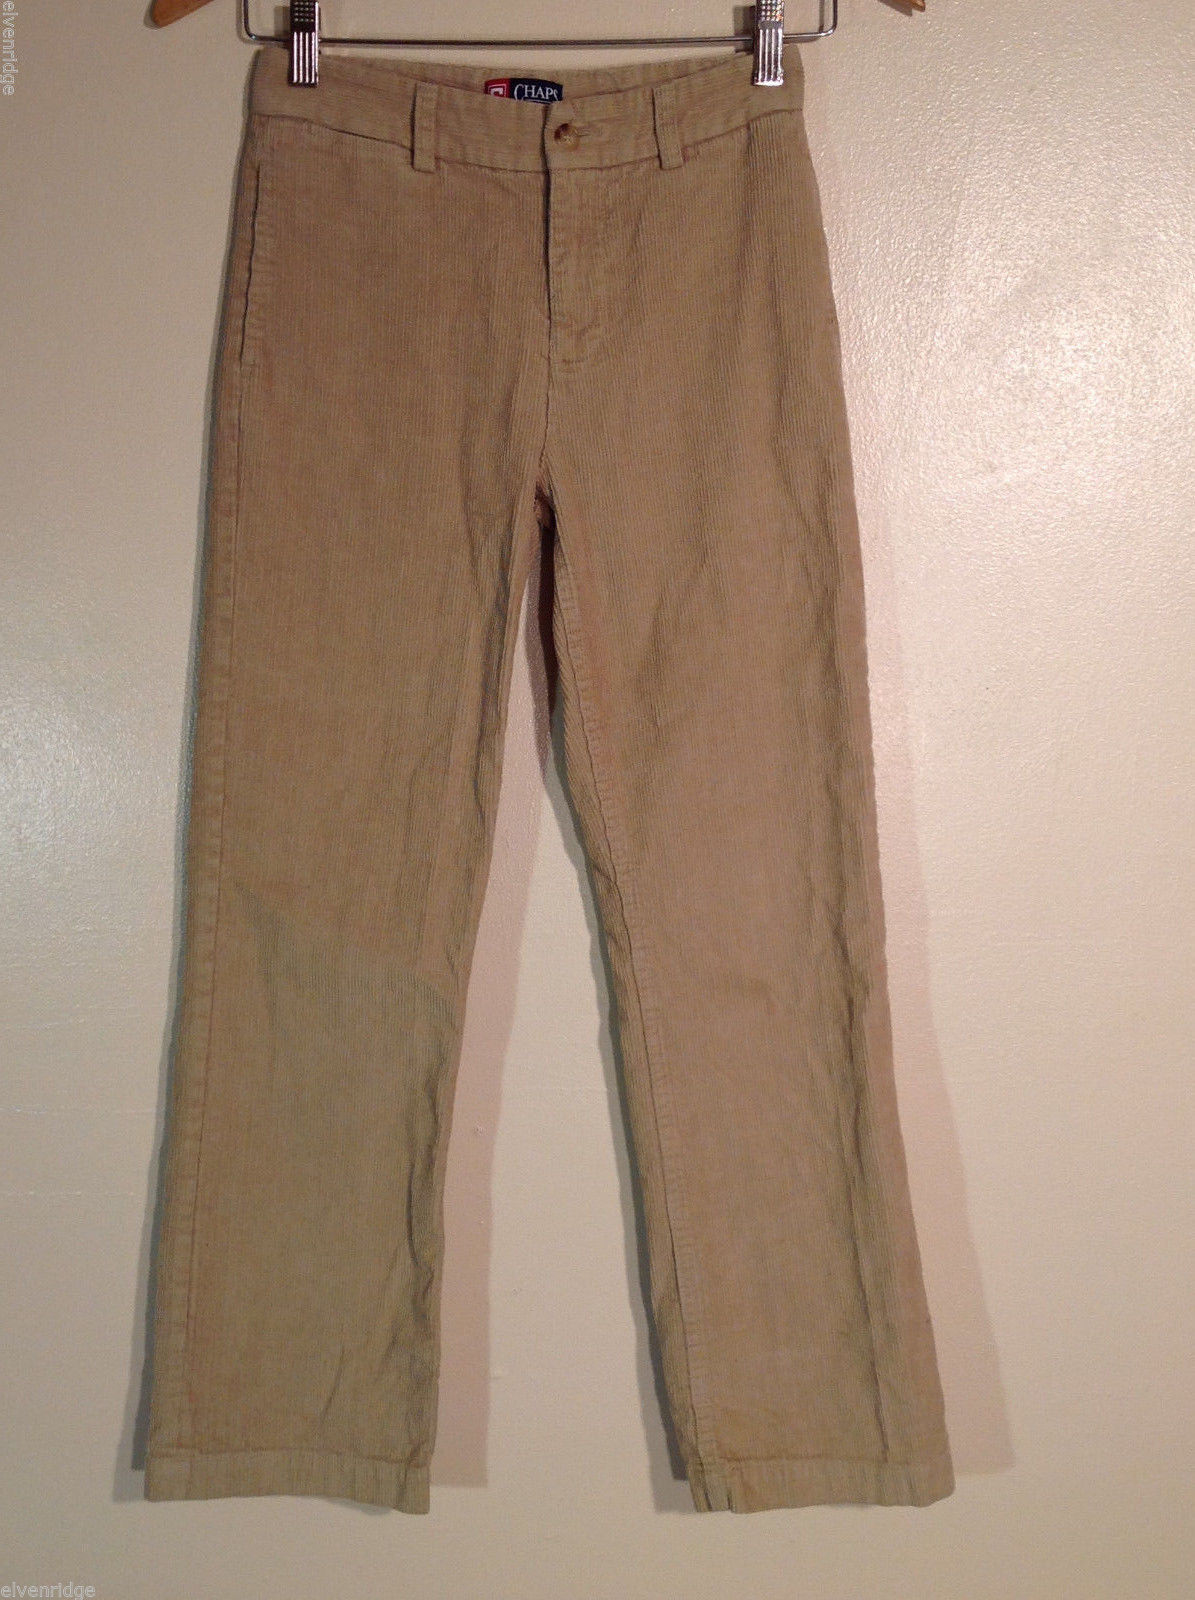 Chaps Boys' Size 12 Corduroy Casual Kids' Pants in Tan (Khaki Camel Brown)